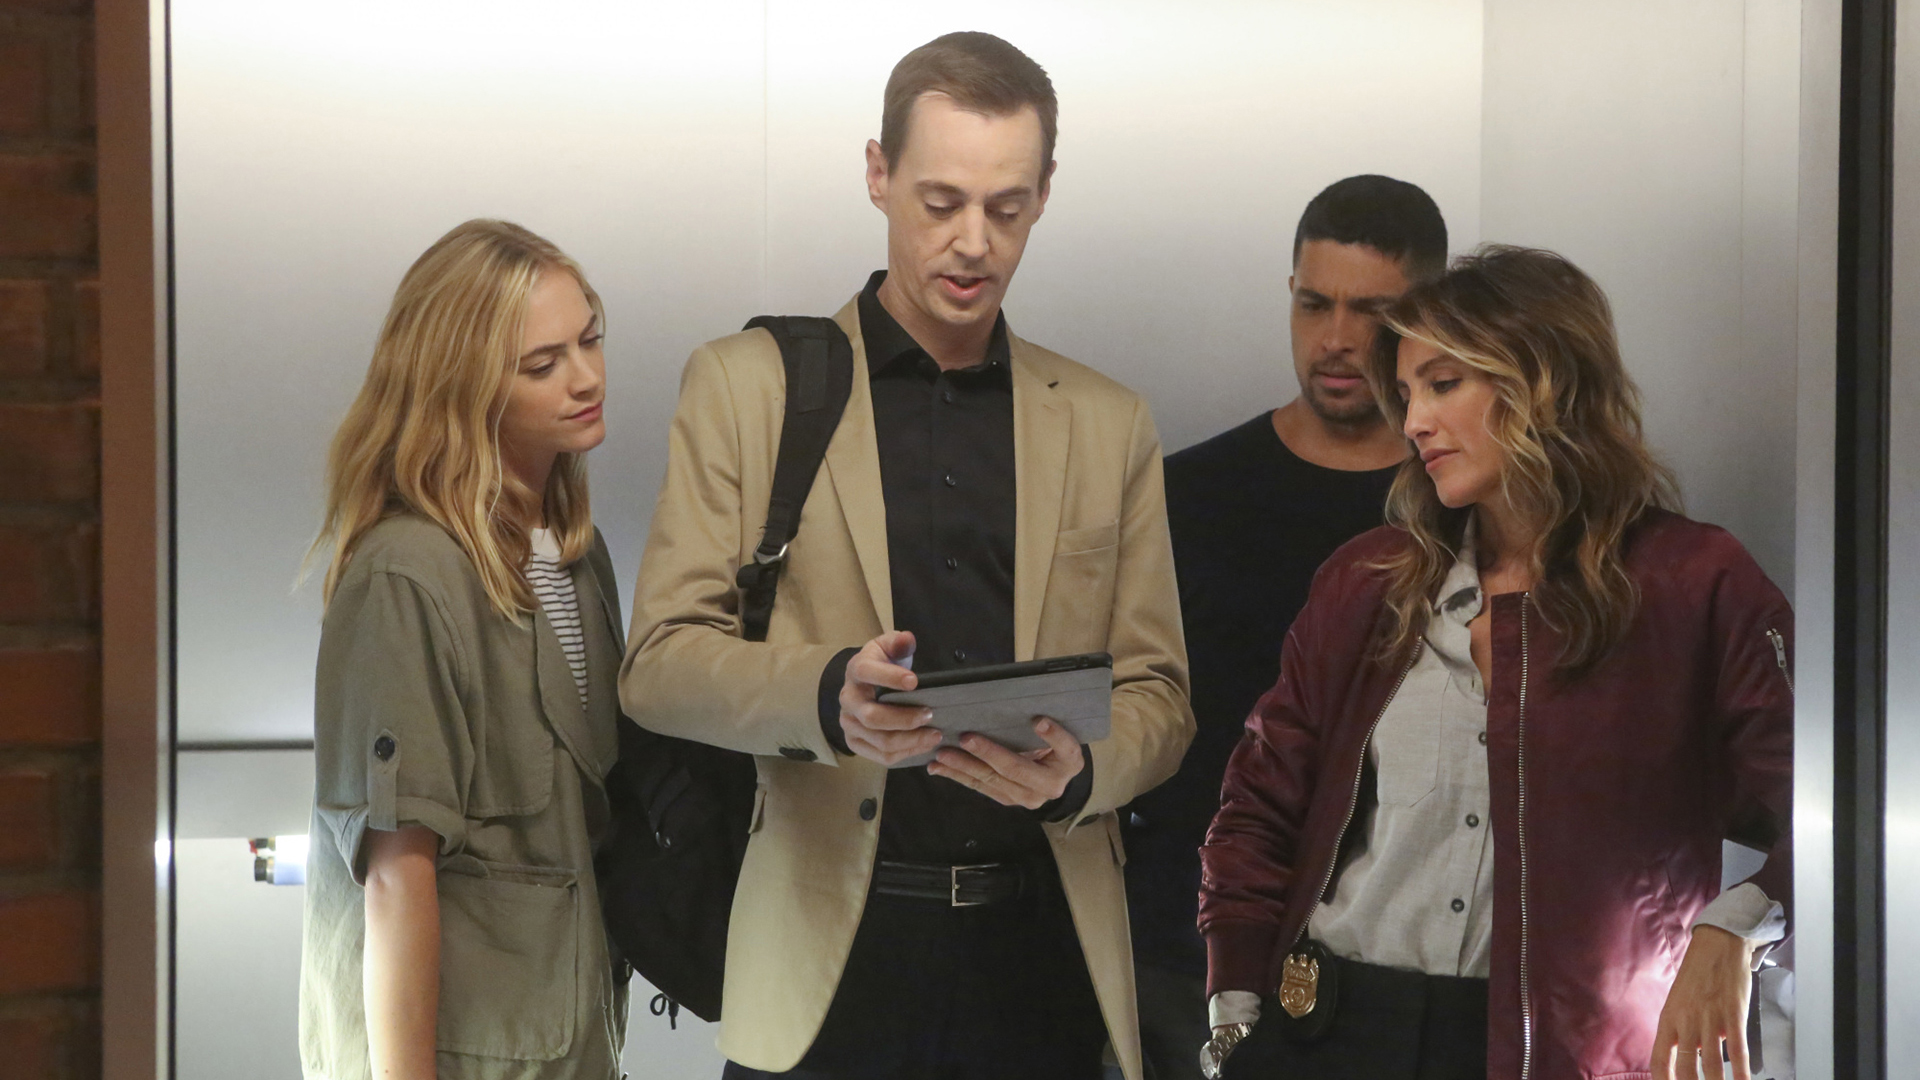 The team gathers to look at what's on McGee's tablet.